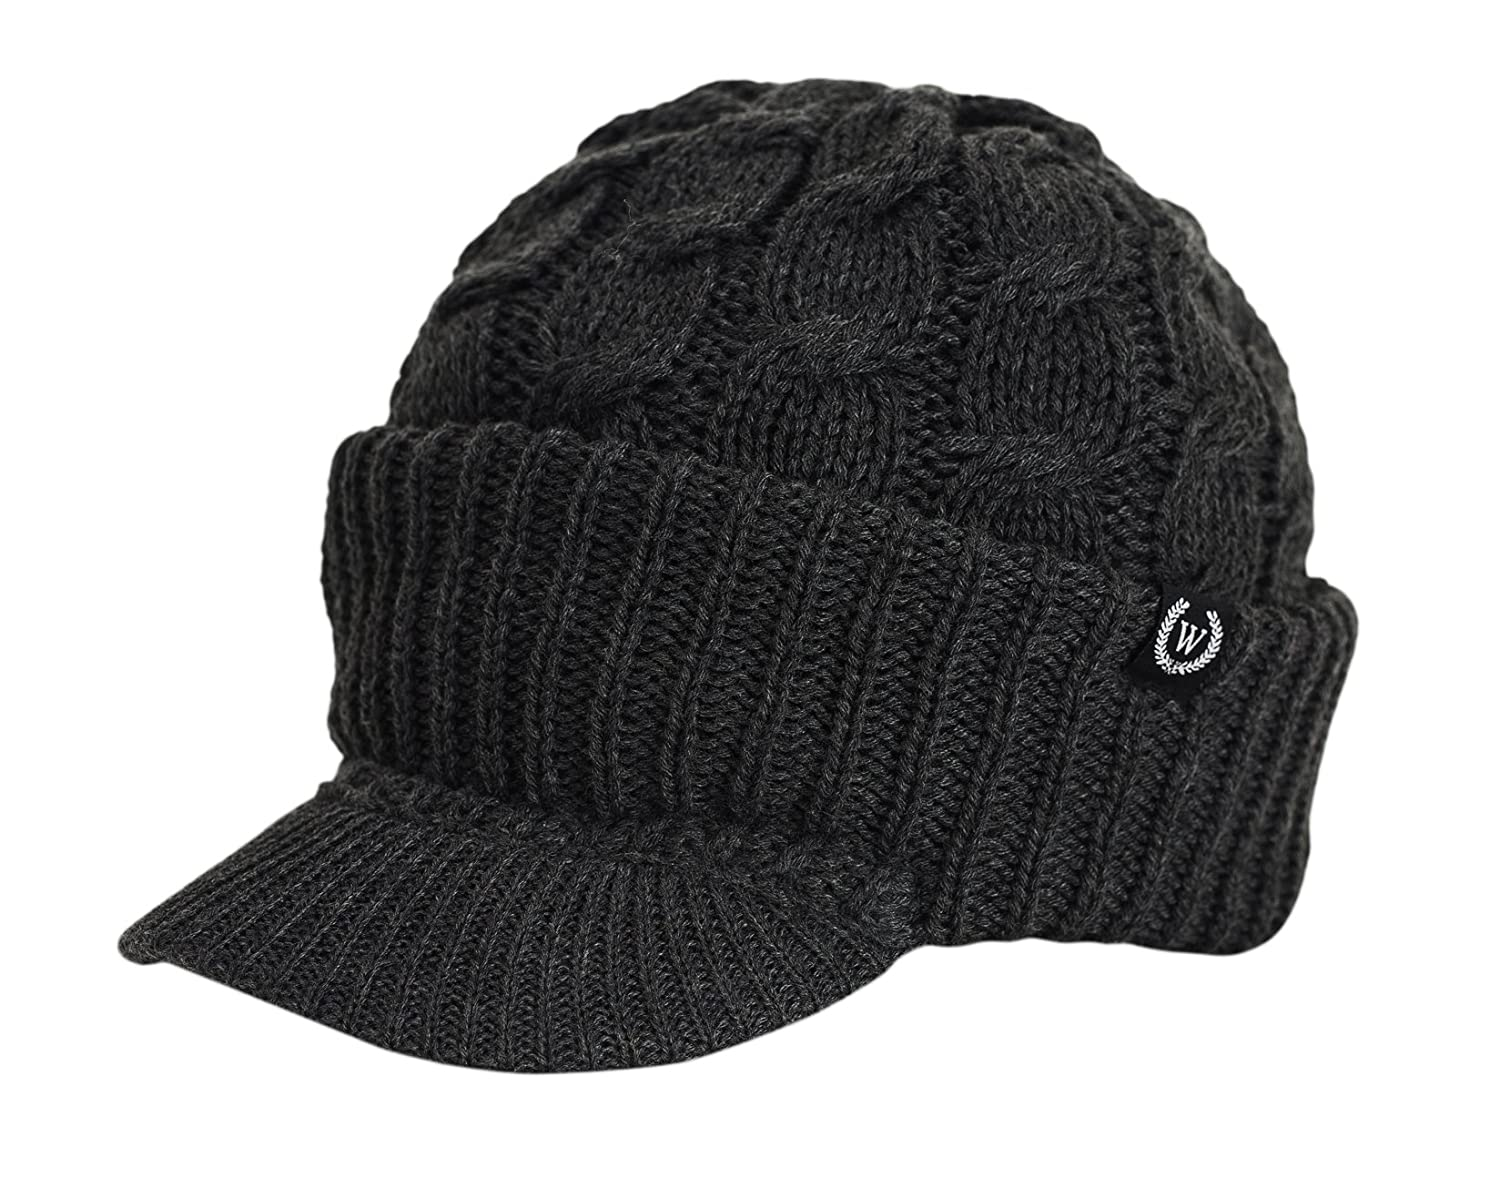 Wonderful Fashion Cable Knitted Hat With Visor Bill Winter Warm Hat For  Women (Charcoal) 3049a0105ec6